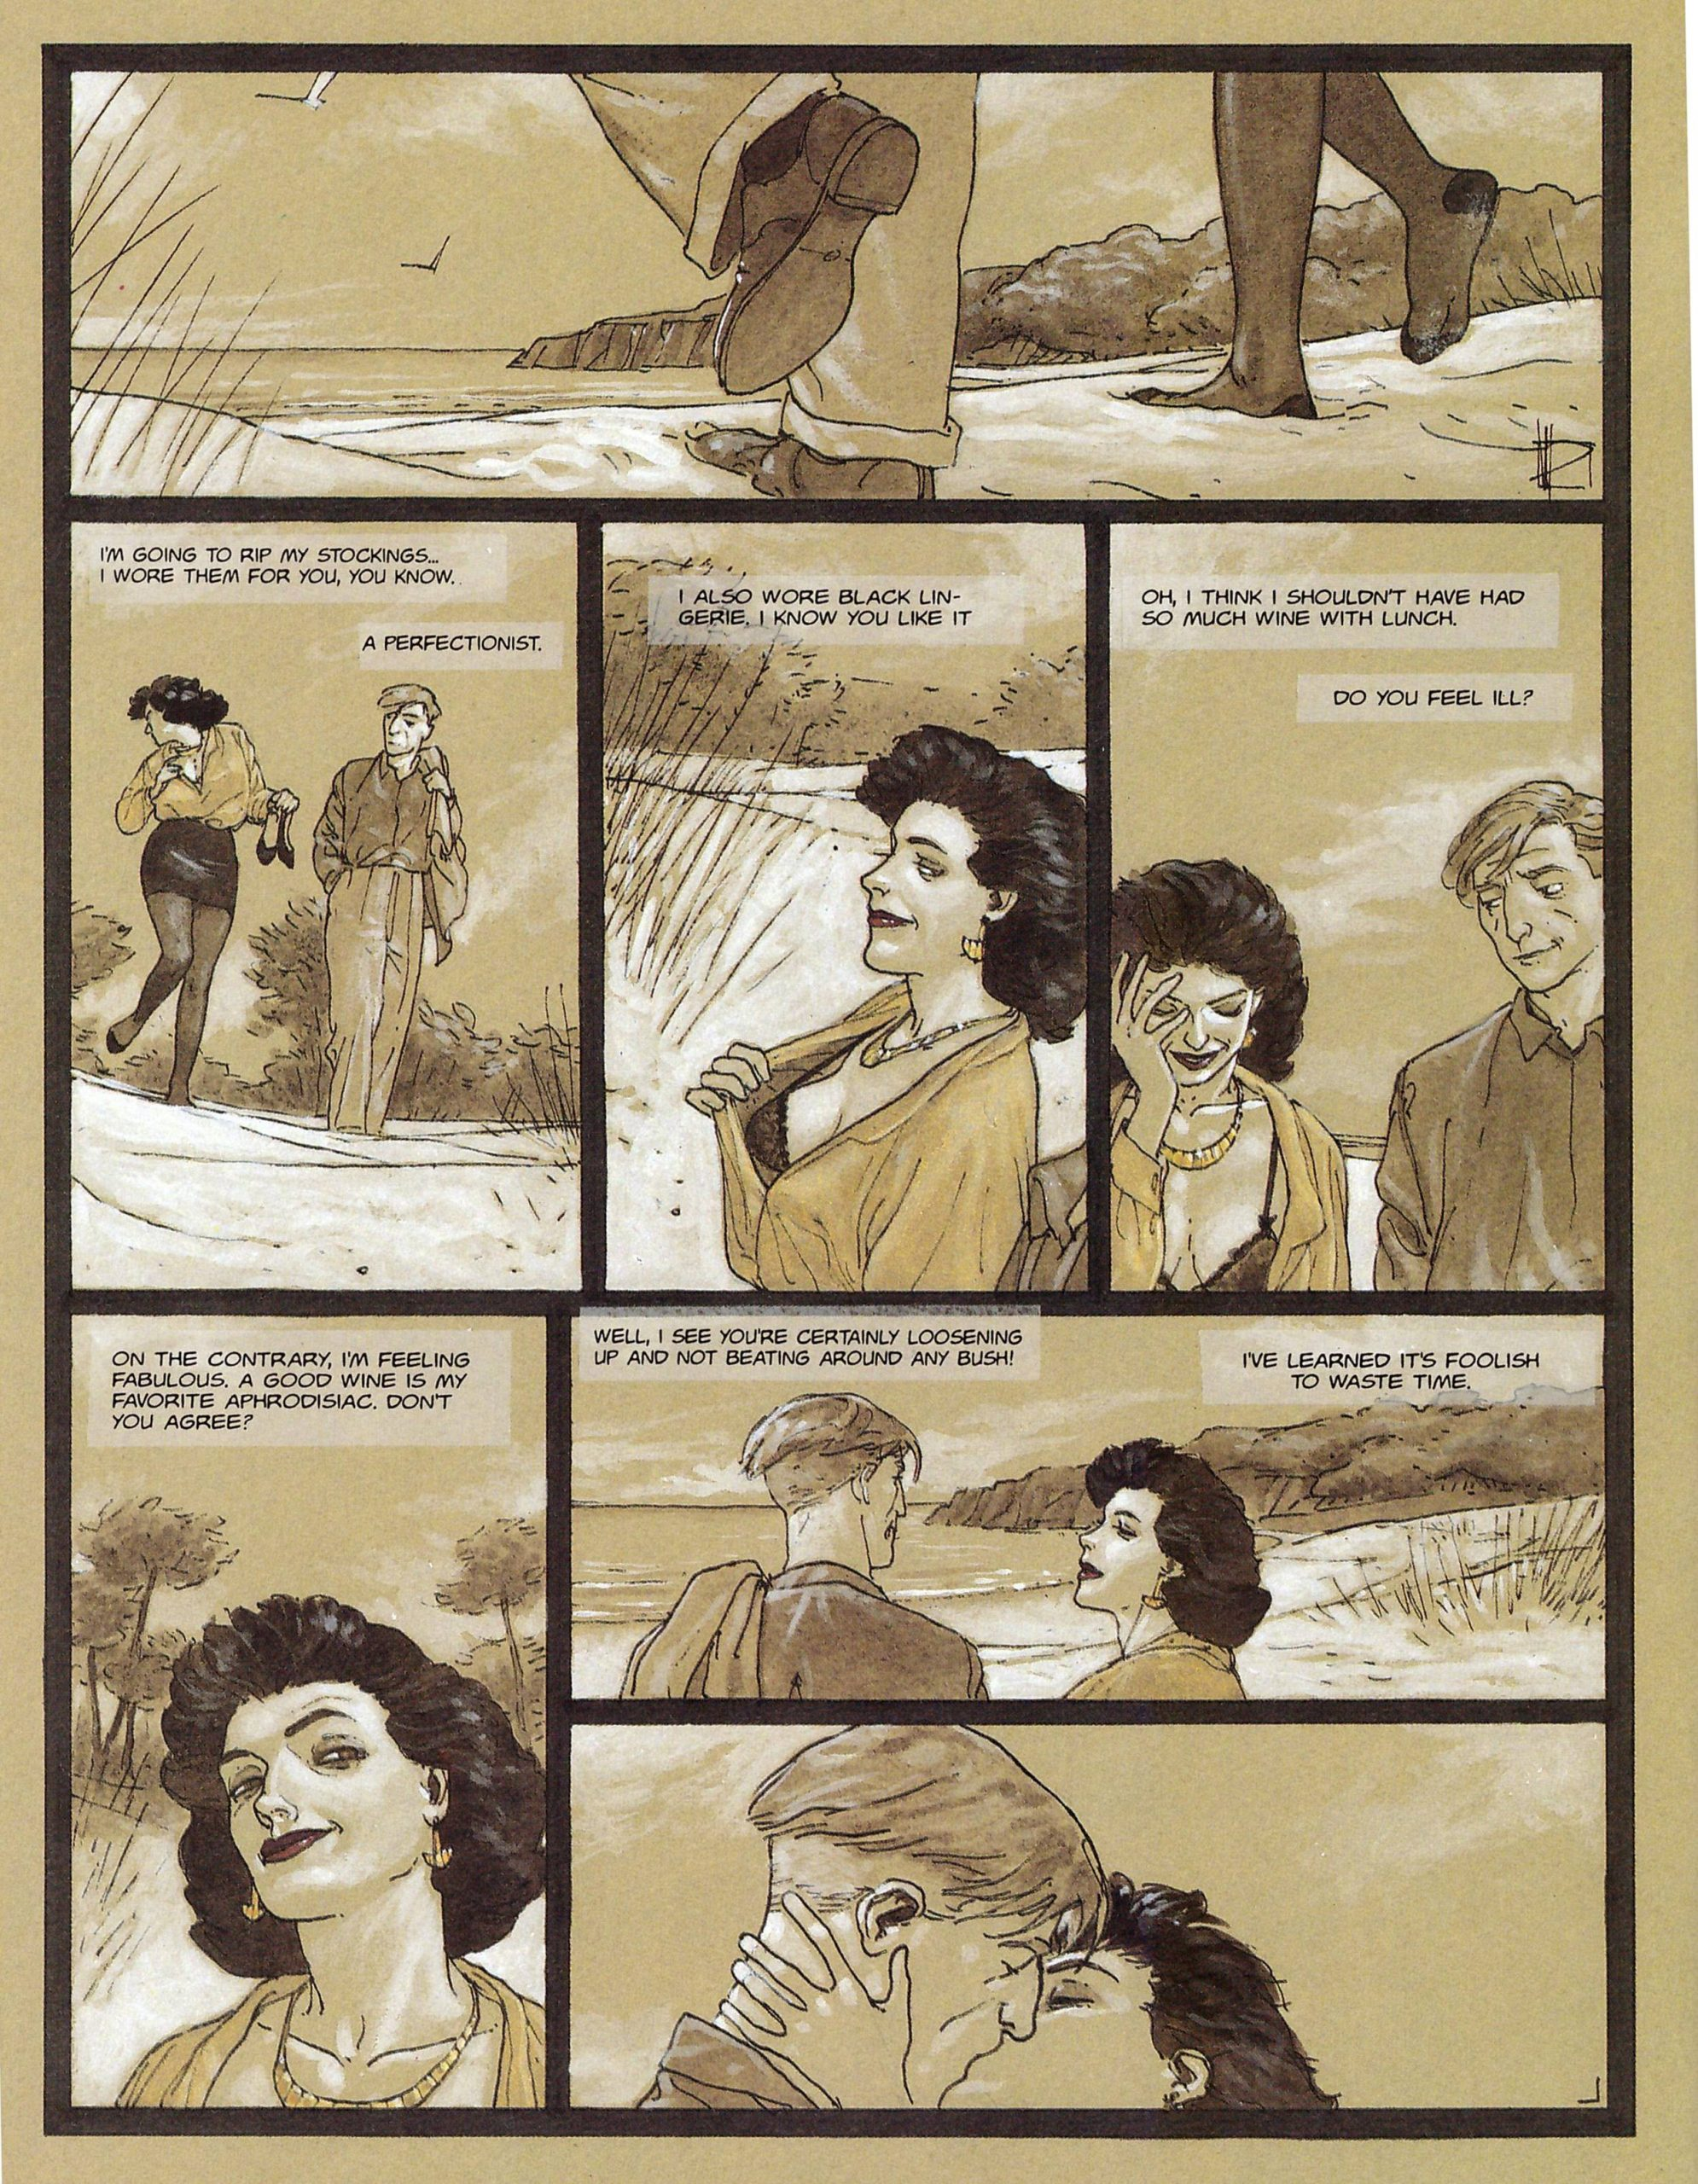 Tangents graphic novel review